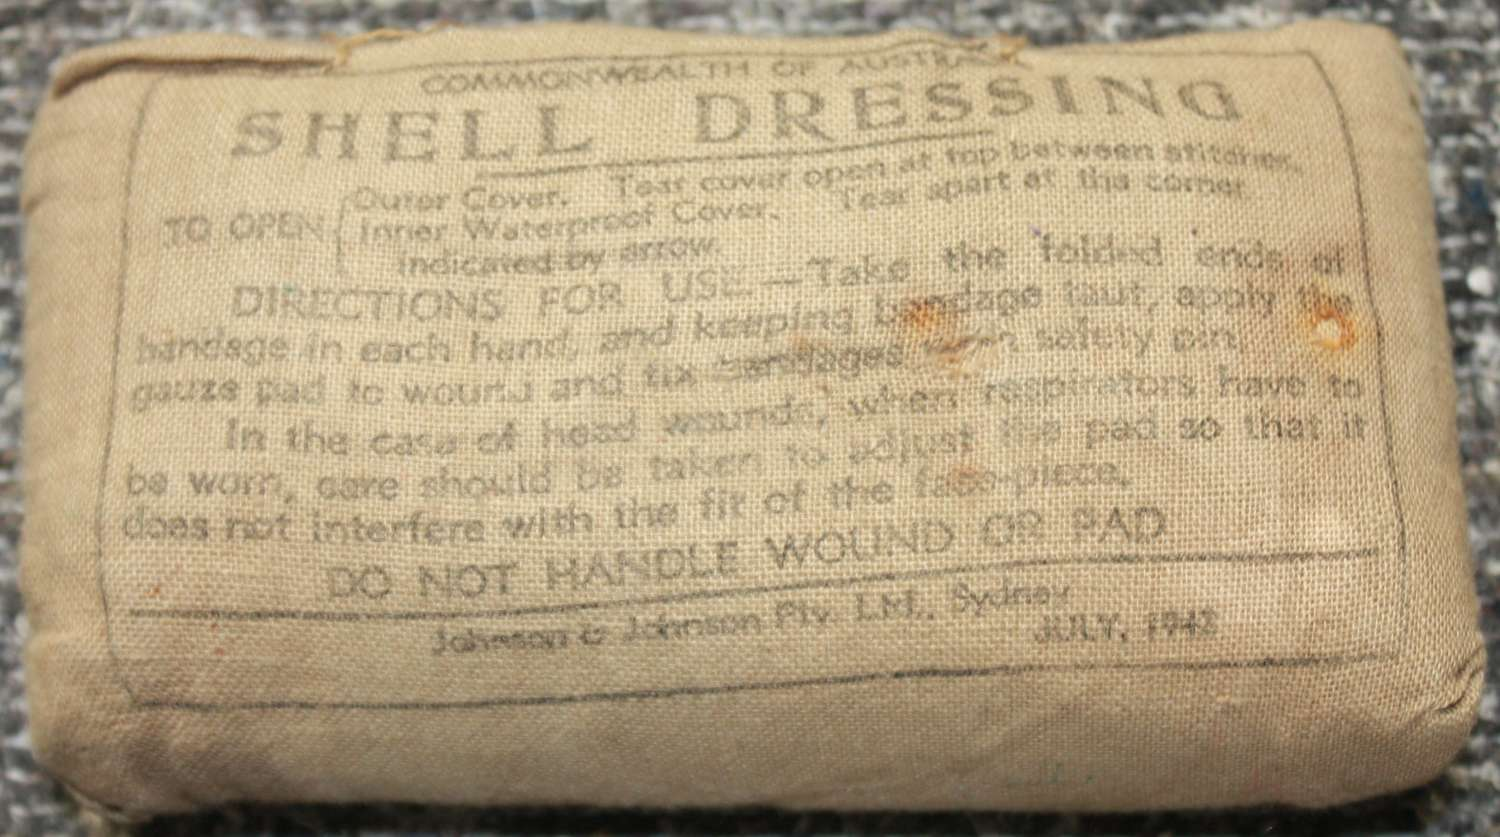 A WWII COMMONWEALTH OF AUSTRALIA SHELL DRESSING